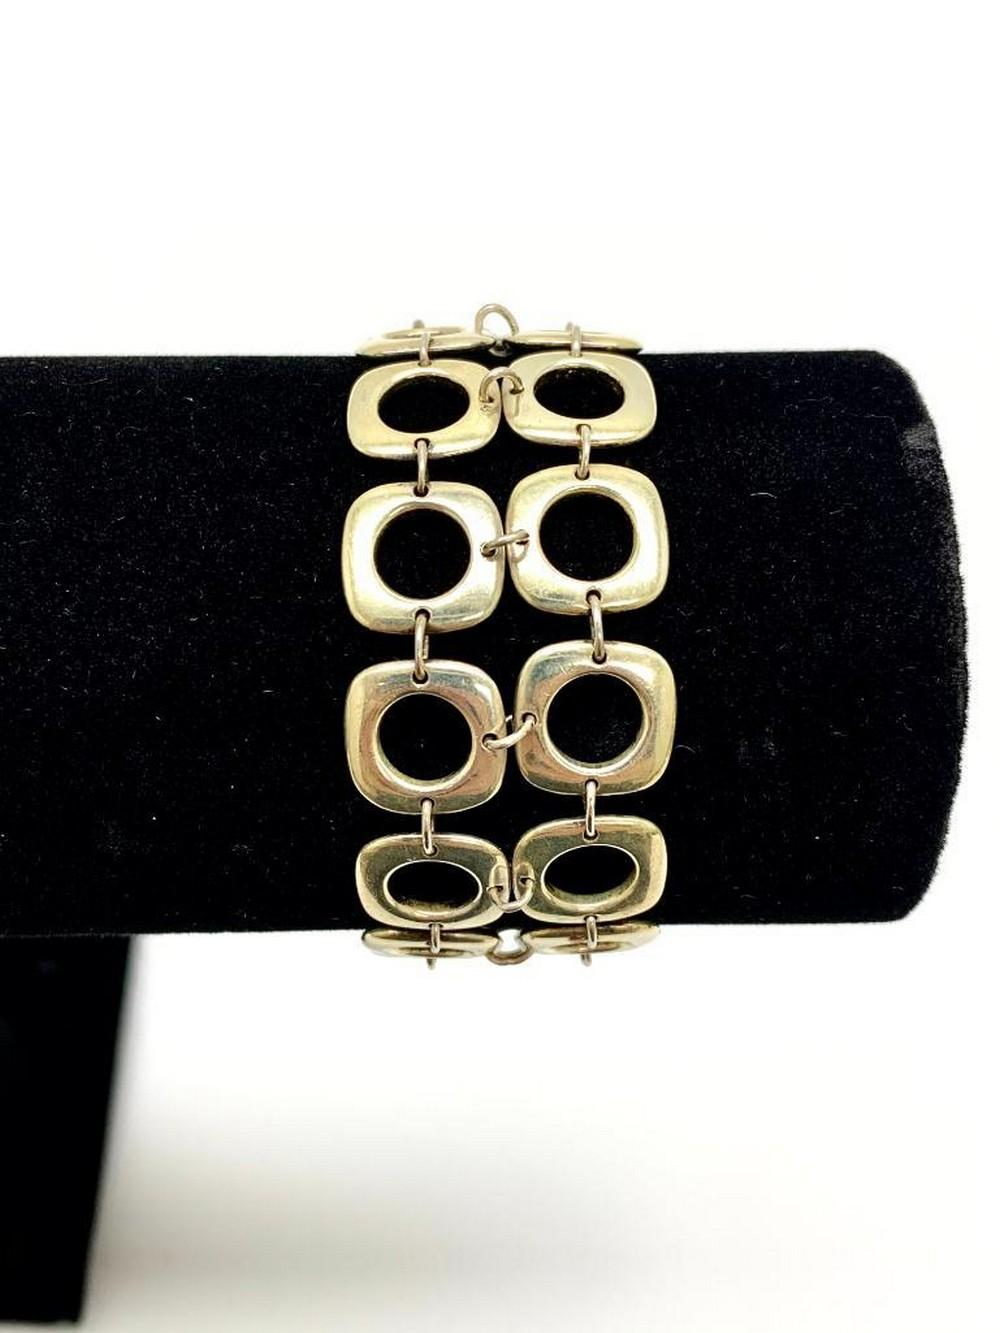 Tiffany & Co. Two Row Double Square Cushion Toggle Bracelet Sterling Silver 925